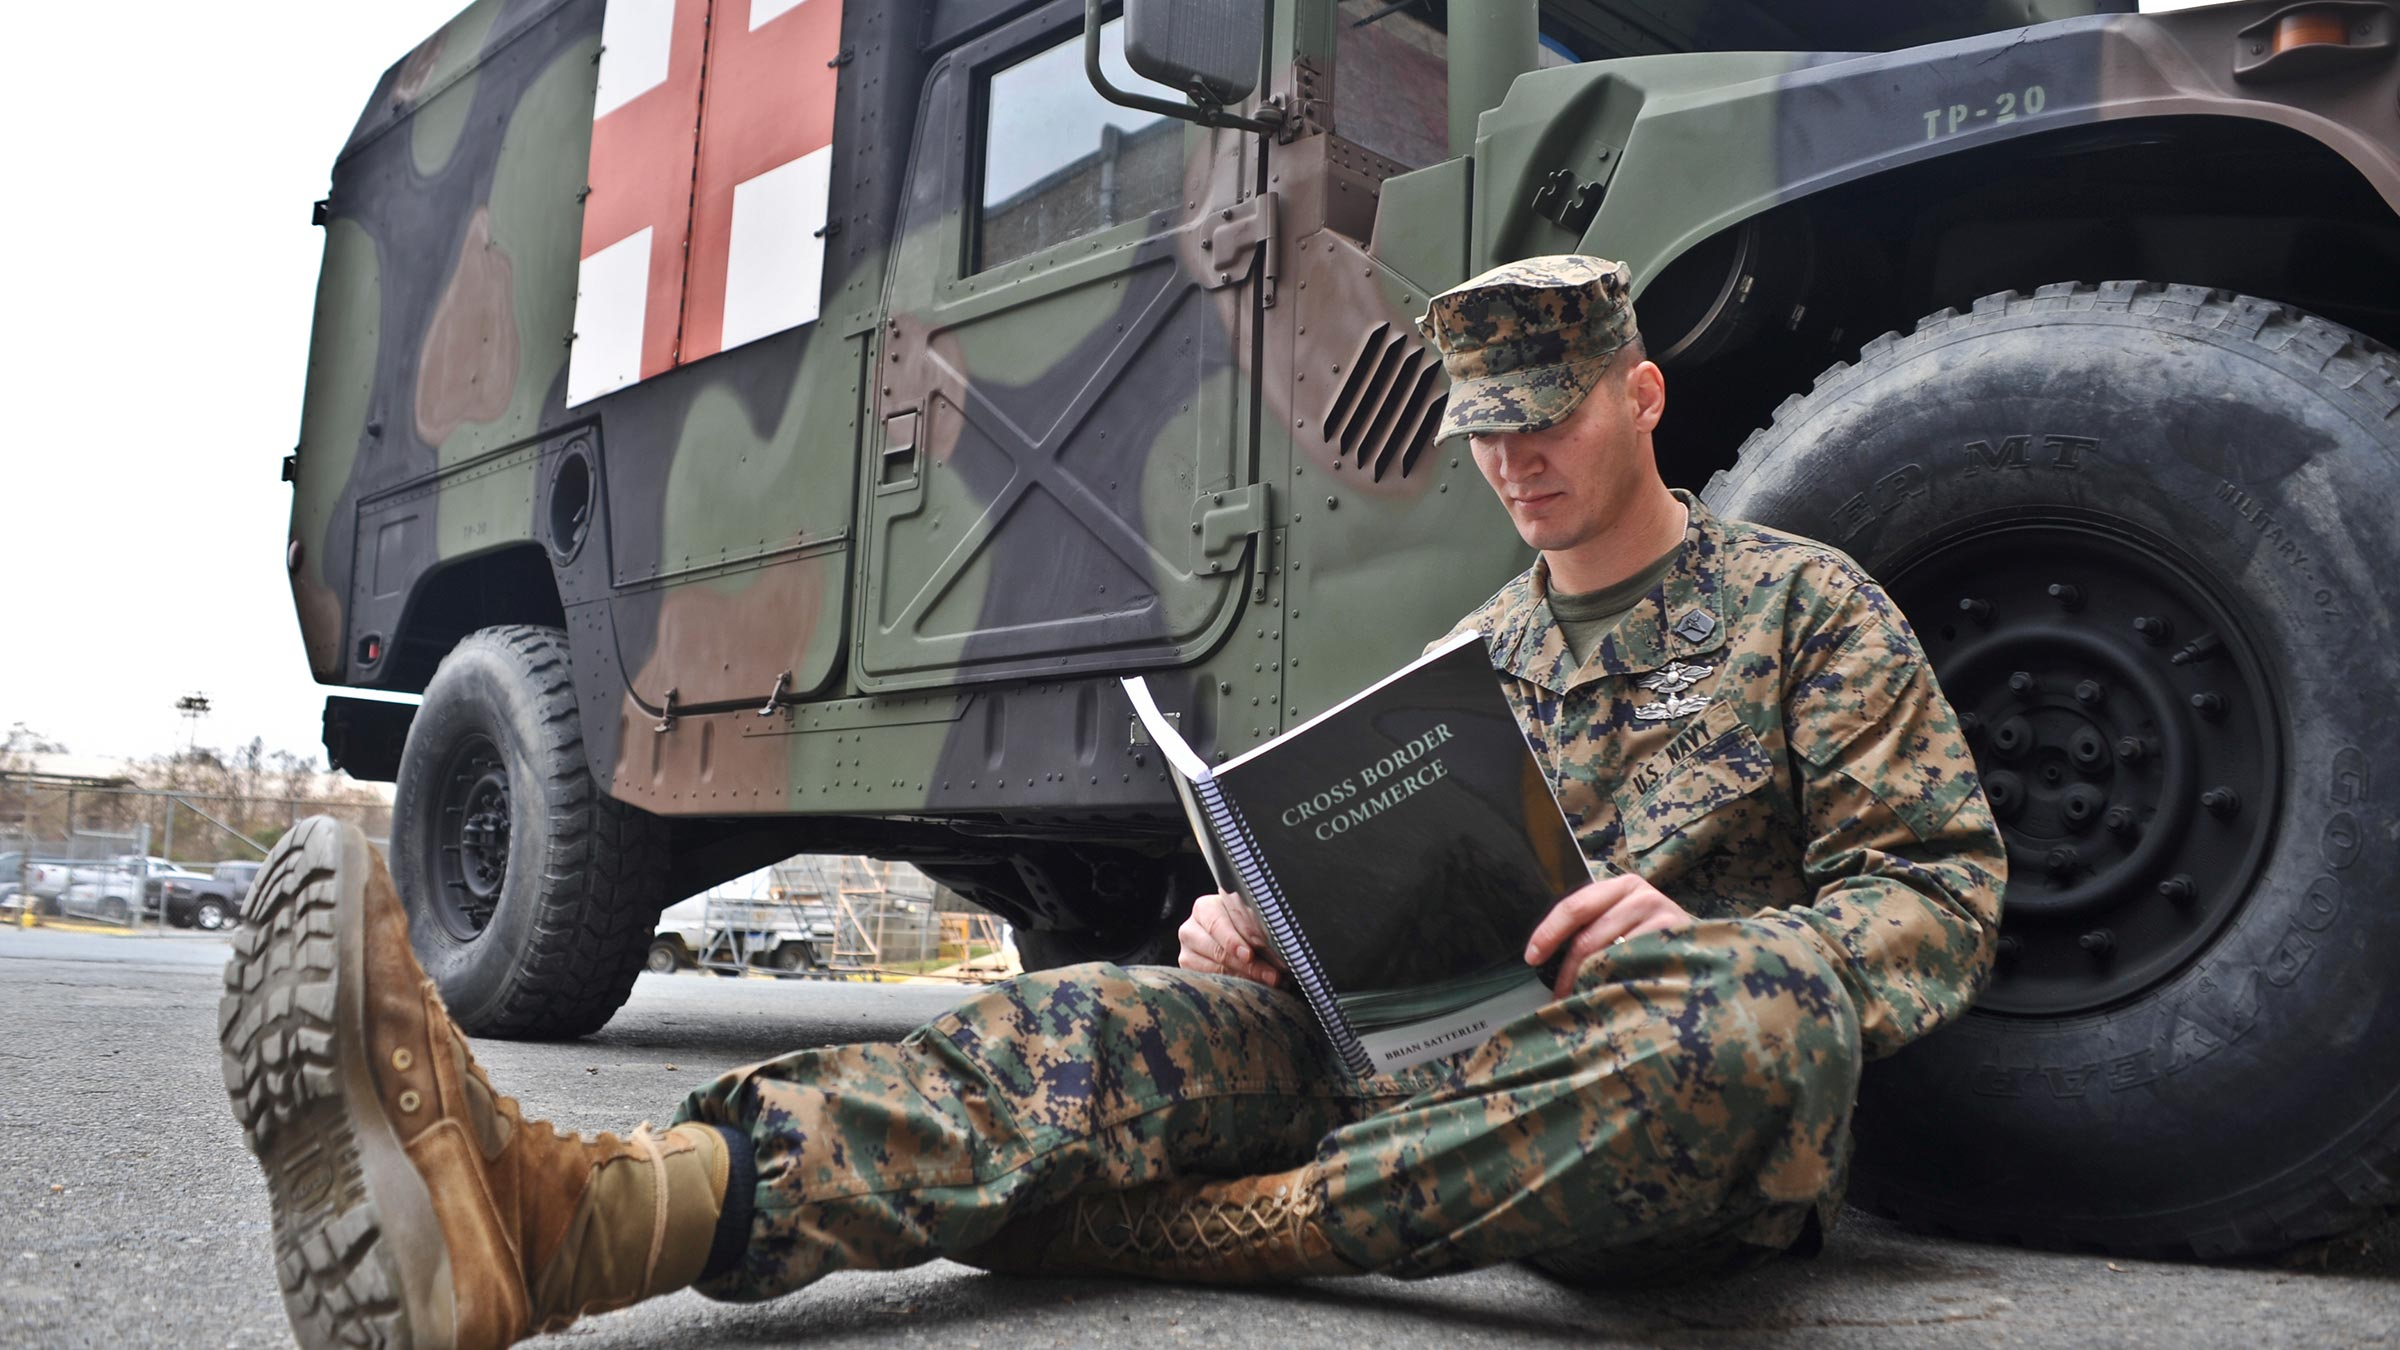 Service member propped up on truck reading